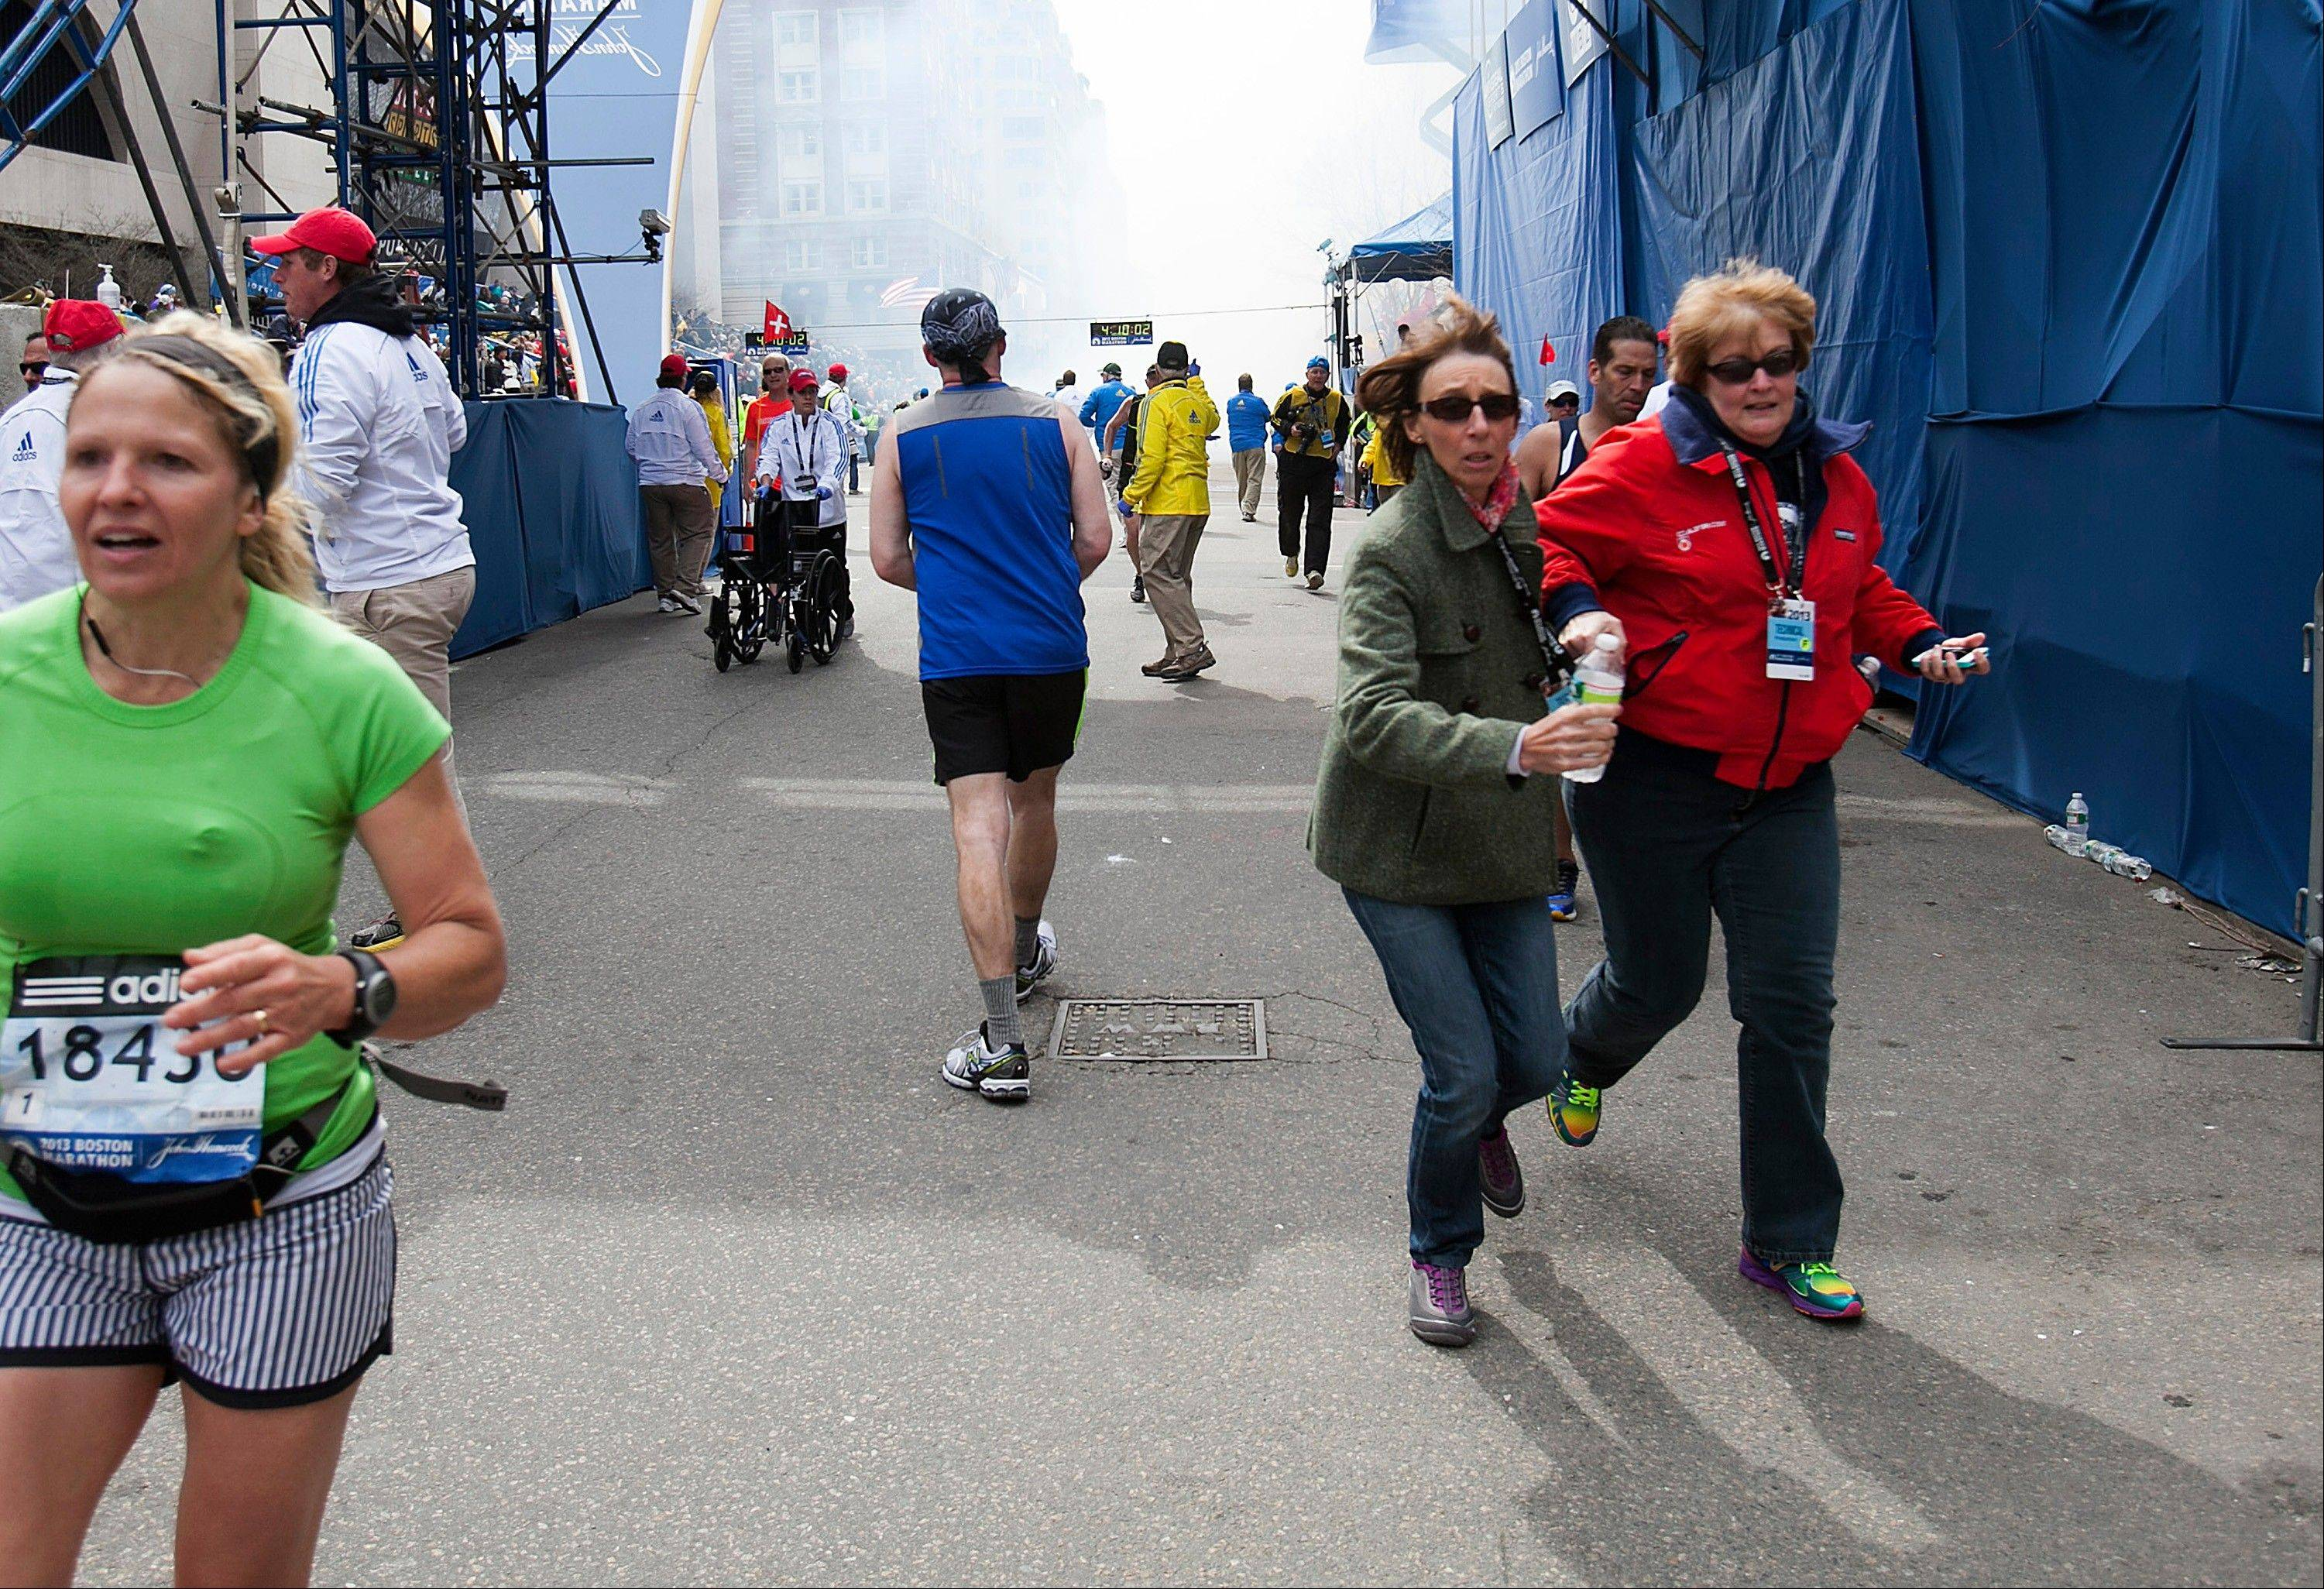 Runners and spectators flee from the scene where two explosions occurred along the final stretch of the Boston Marathon on Boylston Street in Boston, Massachusetts, U.S., on Monday, April 15, 2013. Two powerful explosions rocked the finish line area of the Boston Marathon near Copley Square and police said many people were injured.